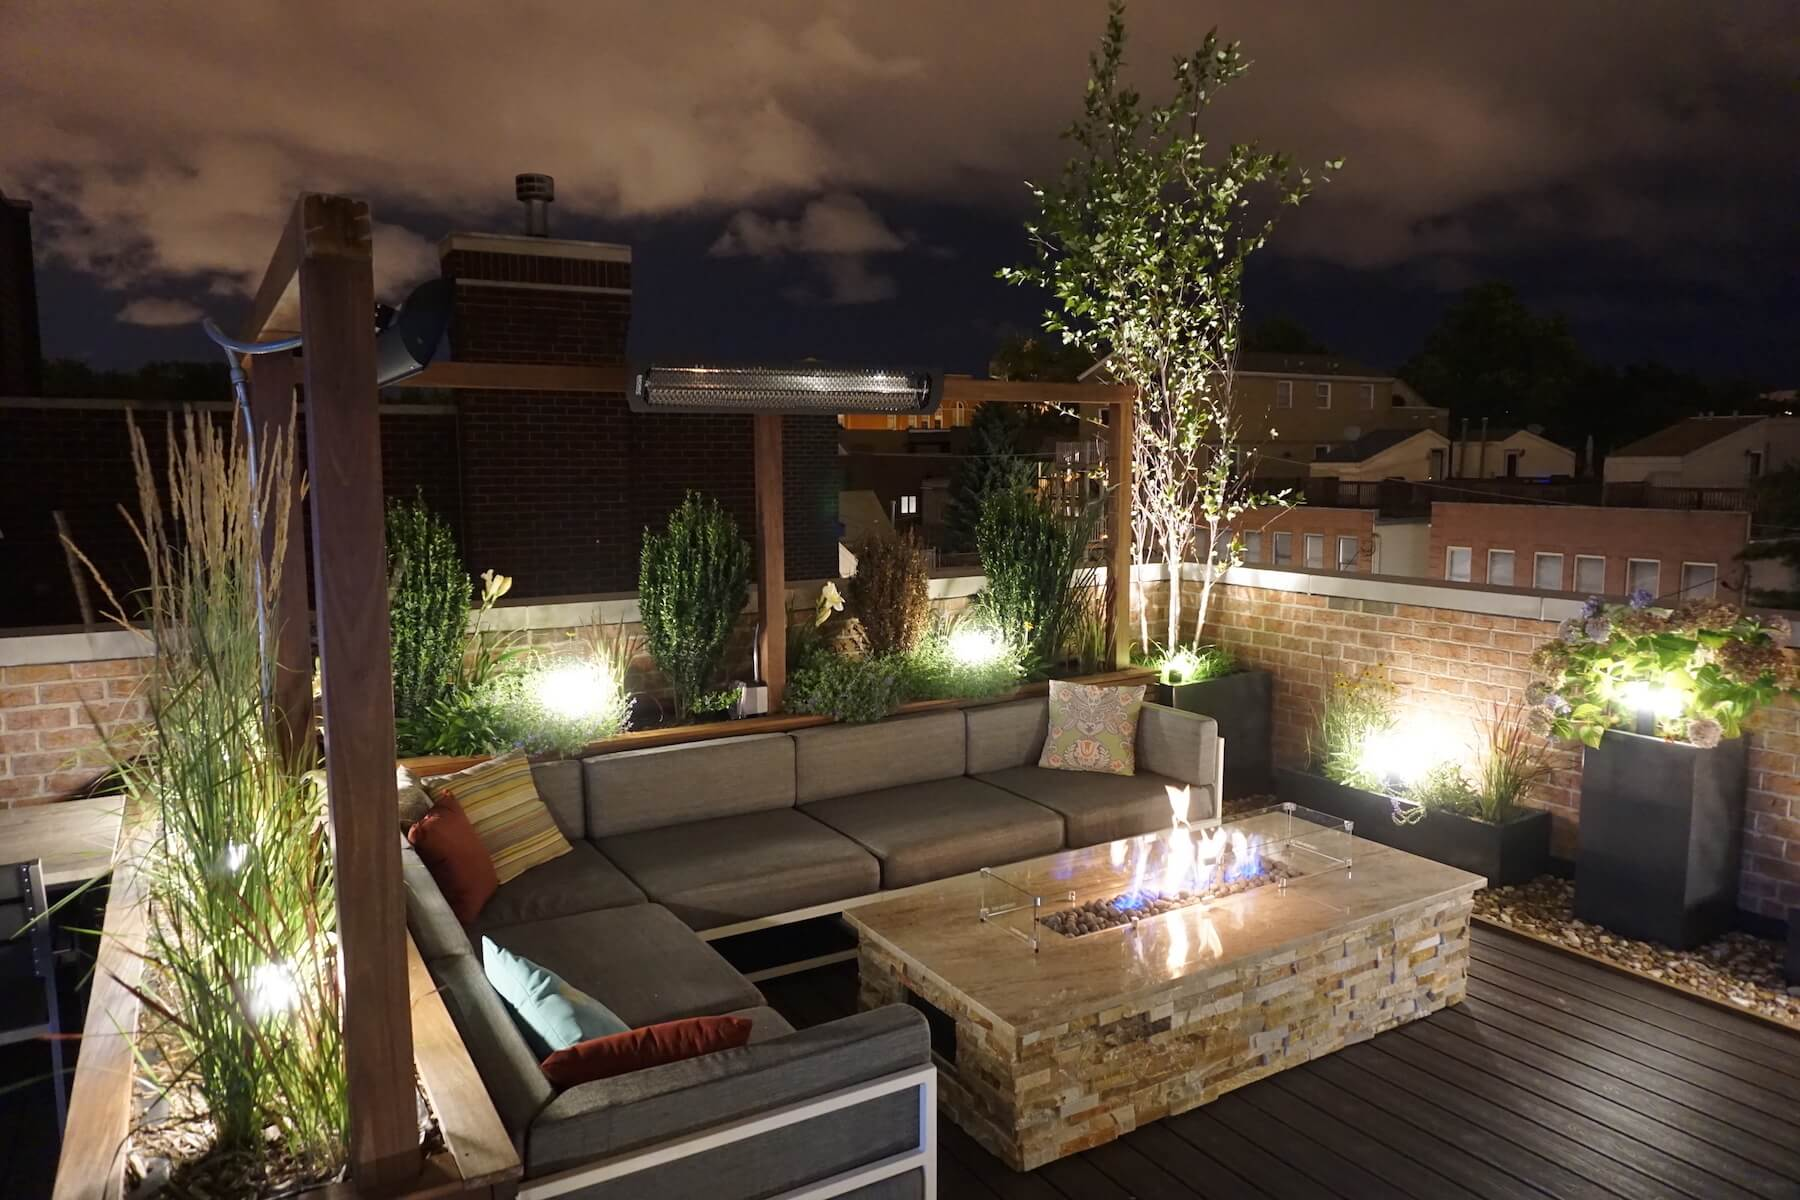 Rooftop Lounge With Fire Table